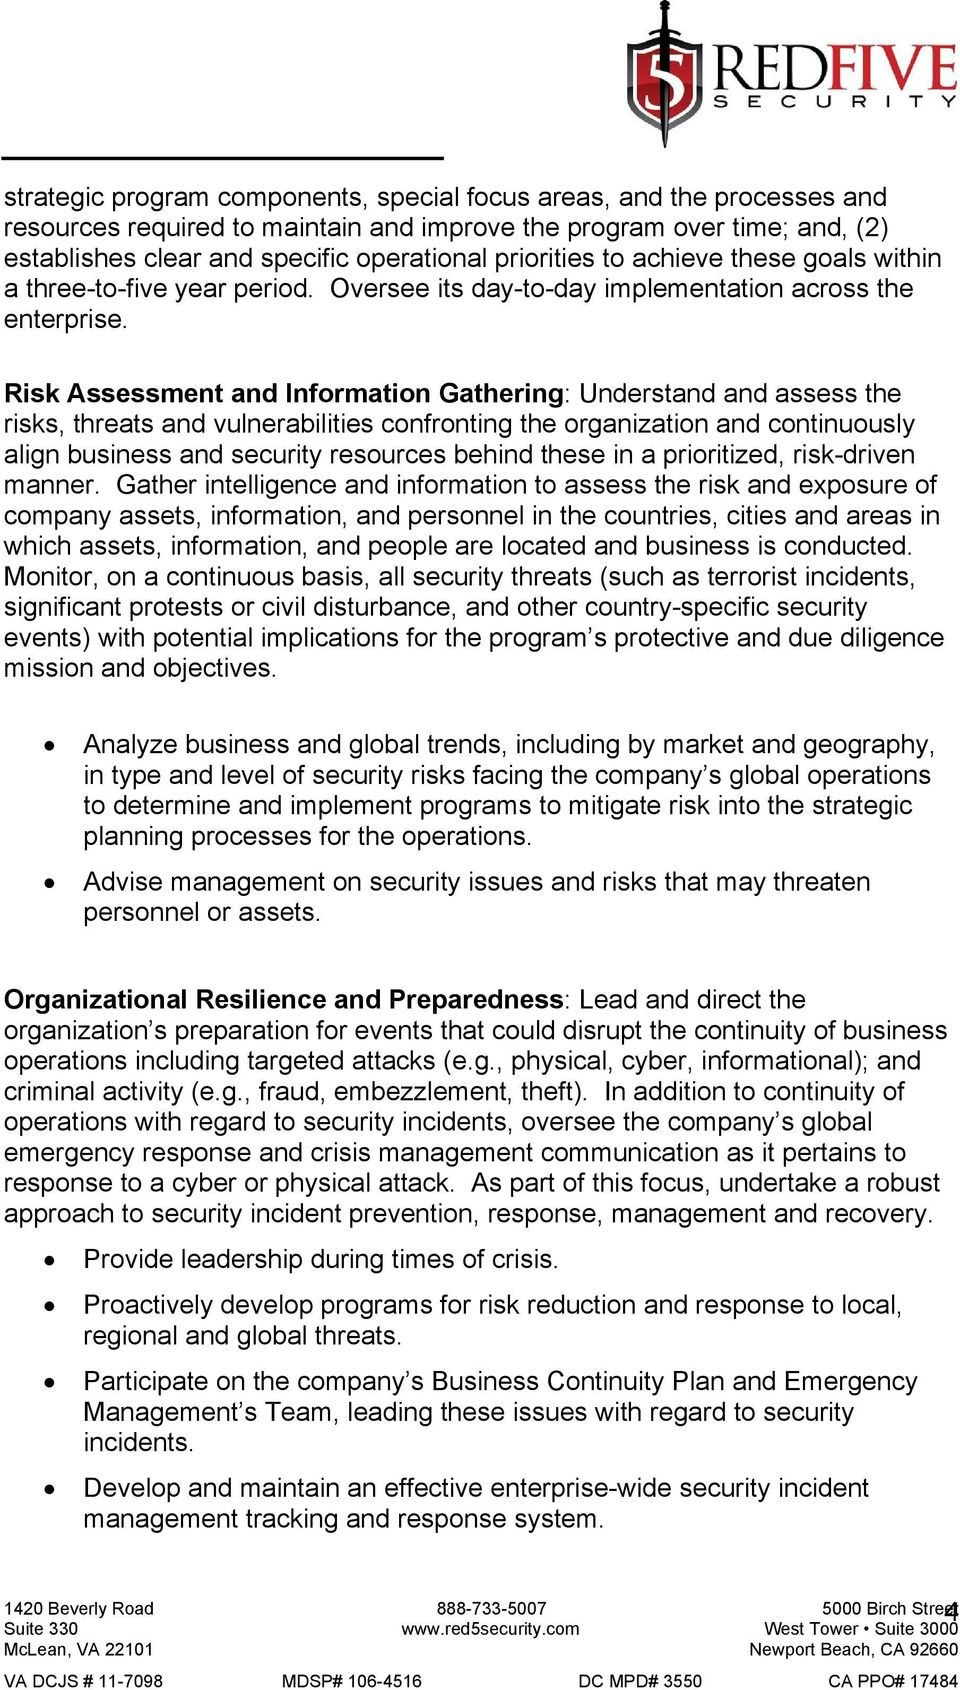 Risk Assessment and Information Gathering: Understand and assess the risks, threats and vulnerabilities confronting the organization and continuously align business and security resources behind